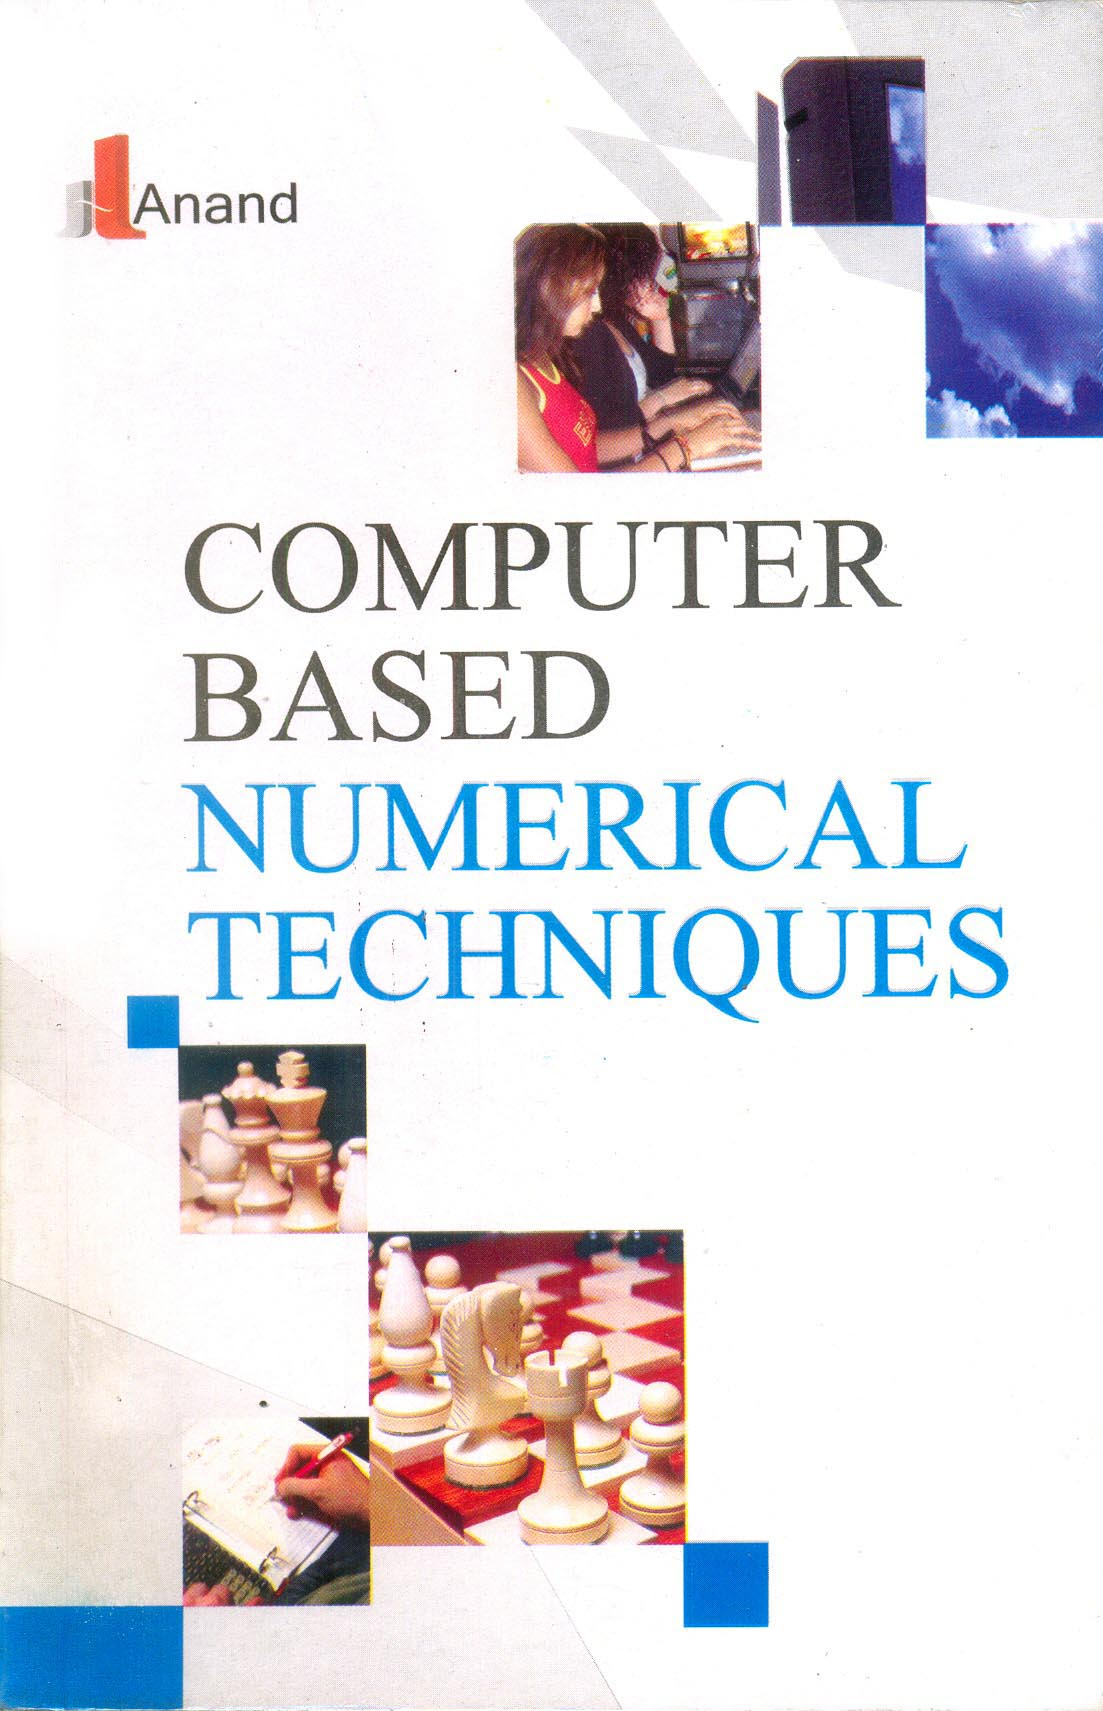 301 COMPUTER BASED NUMERICAL TECHNIQUES